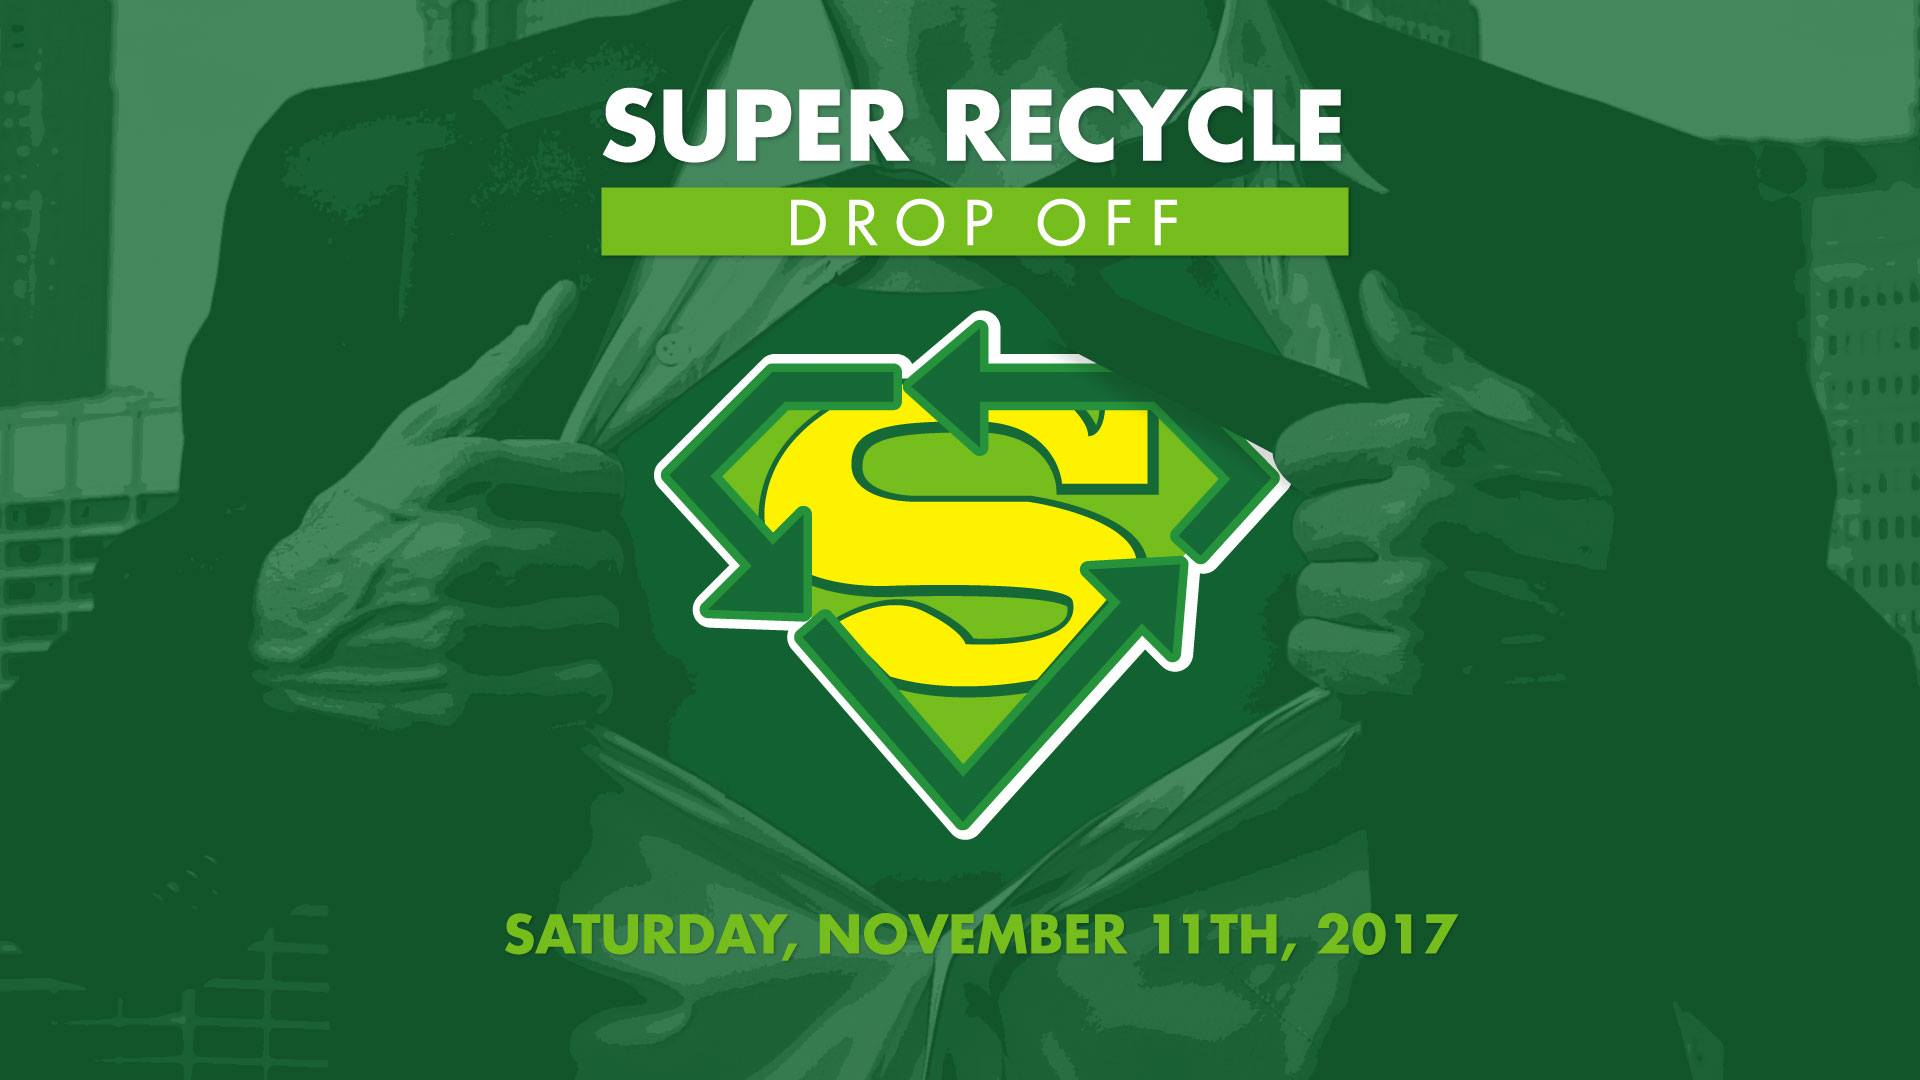 Super Recycle Drop Off